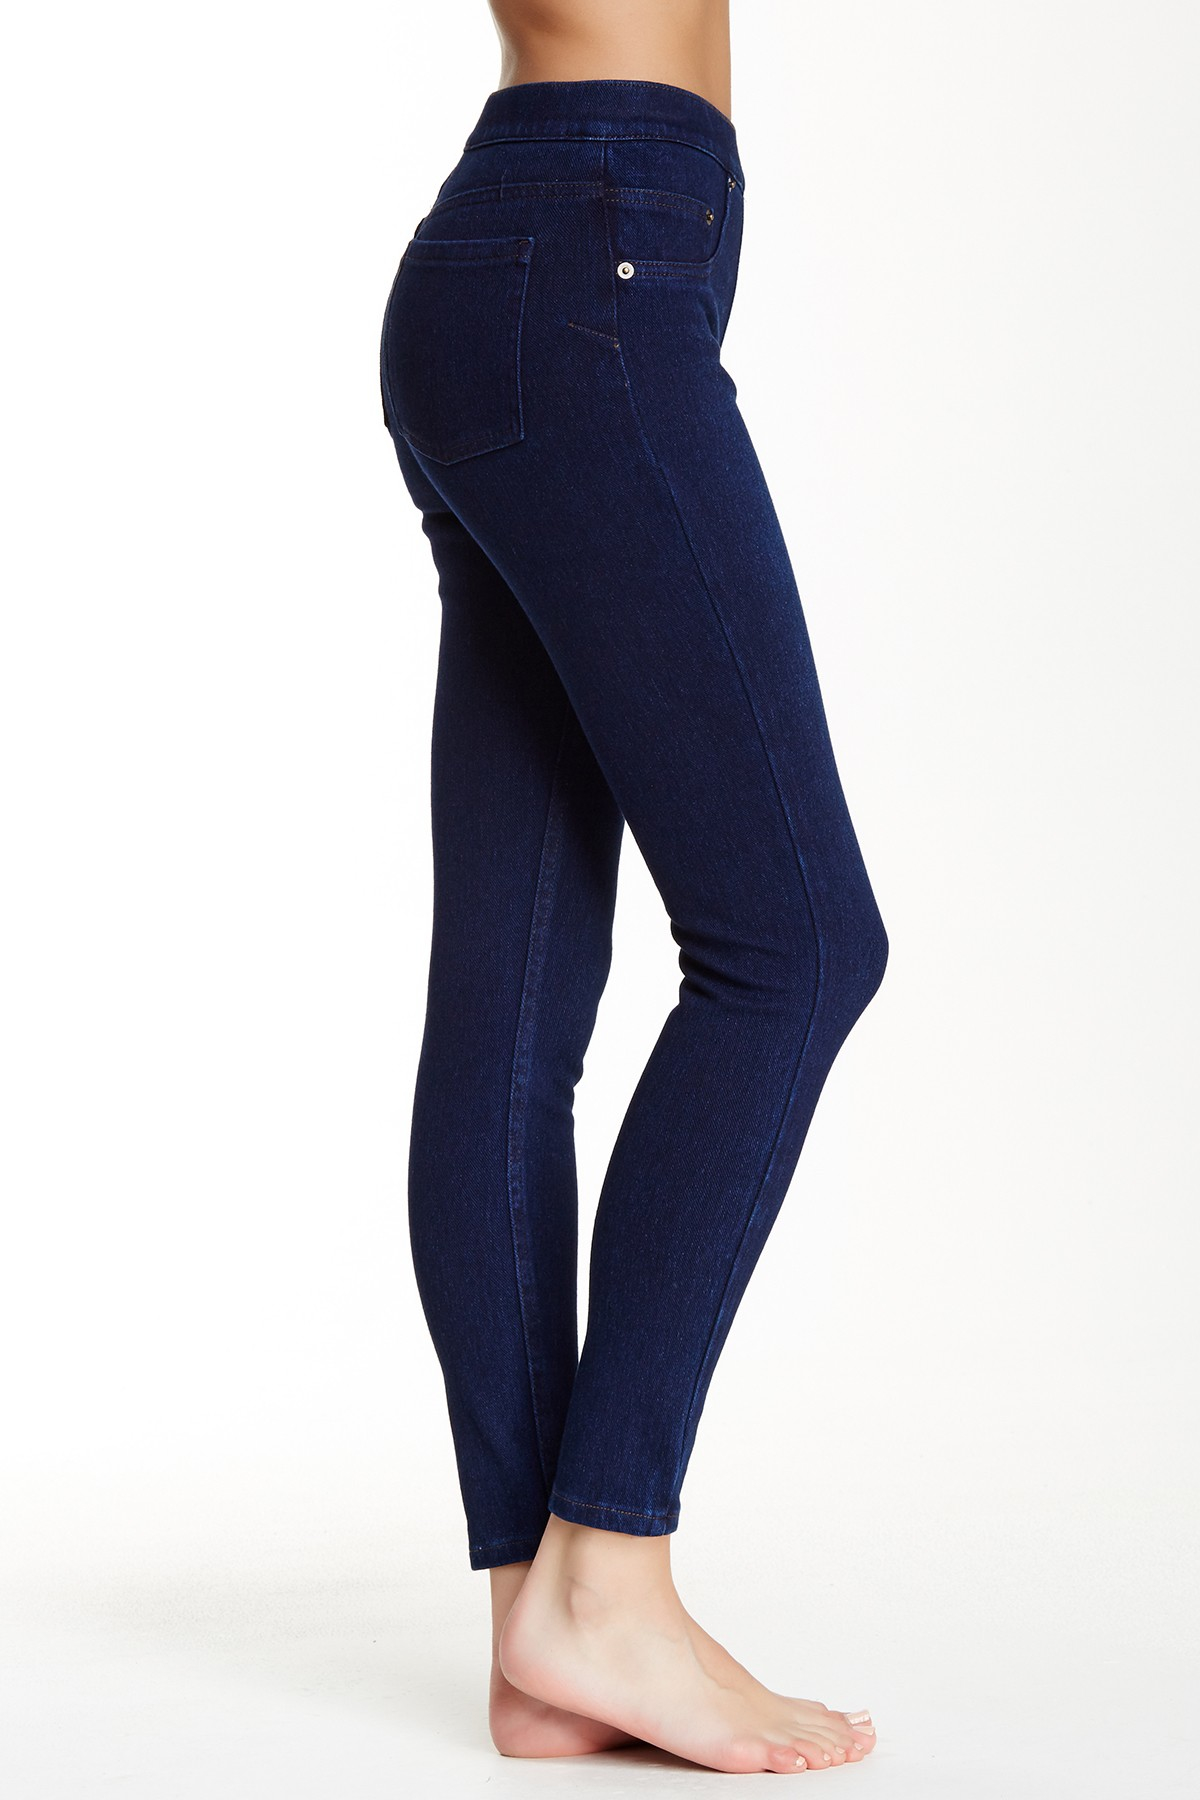 Spanx Cropped Denim Legging in Blue